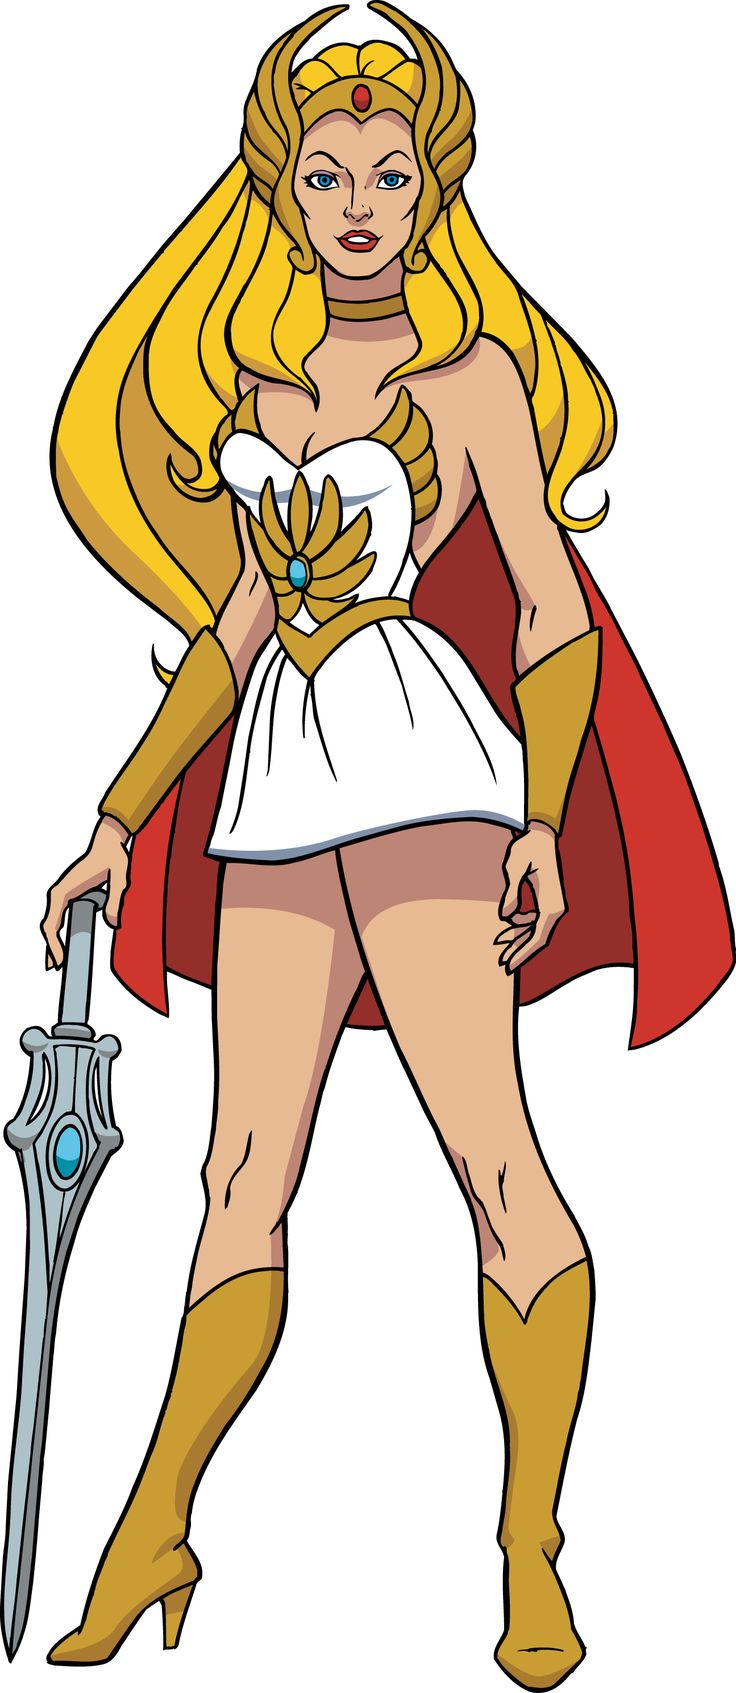 Although She-Ra was meant to appeal to little girls more than He-man I never really liked her much!